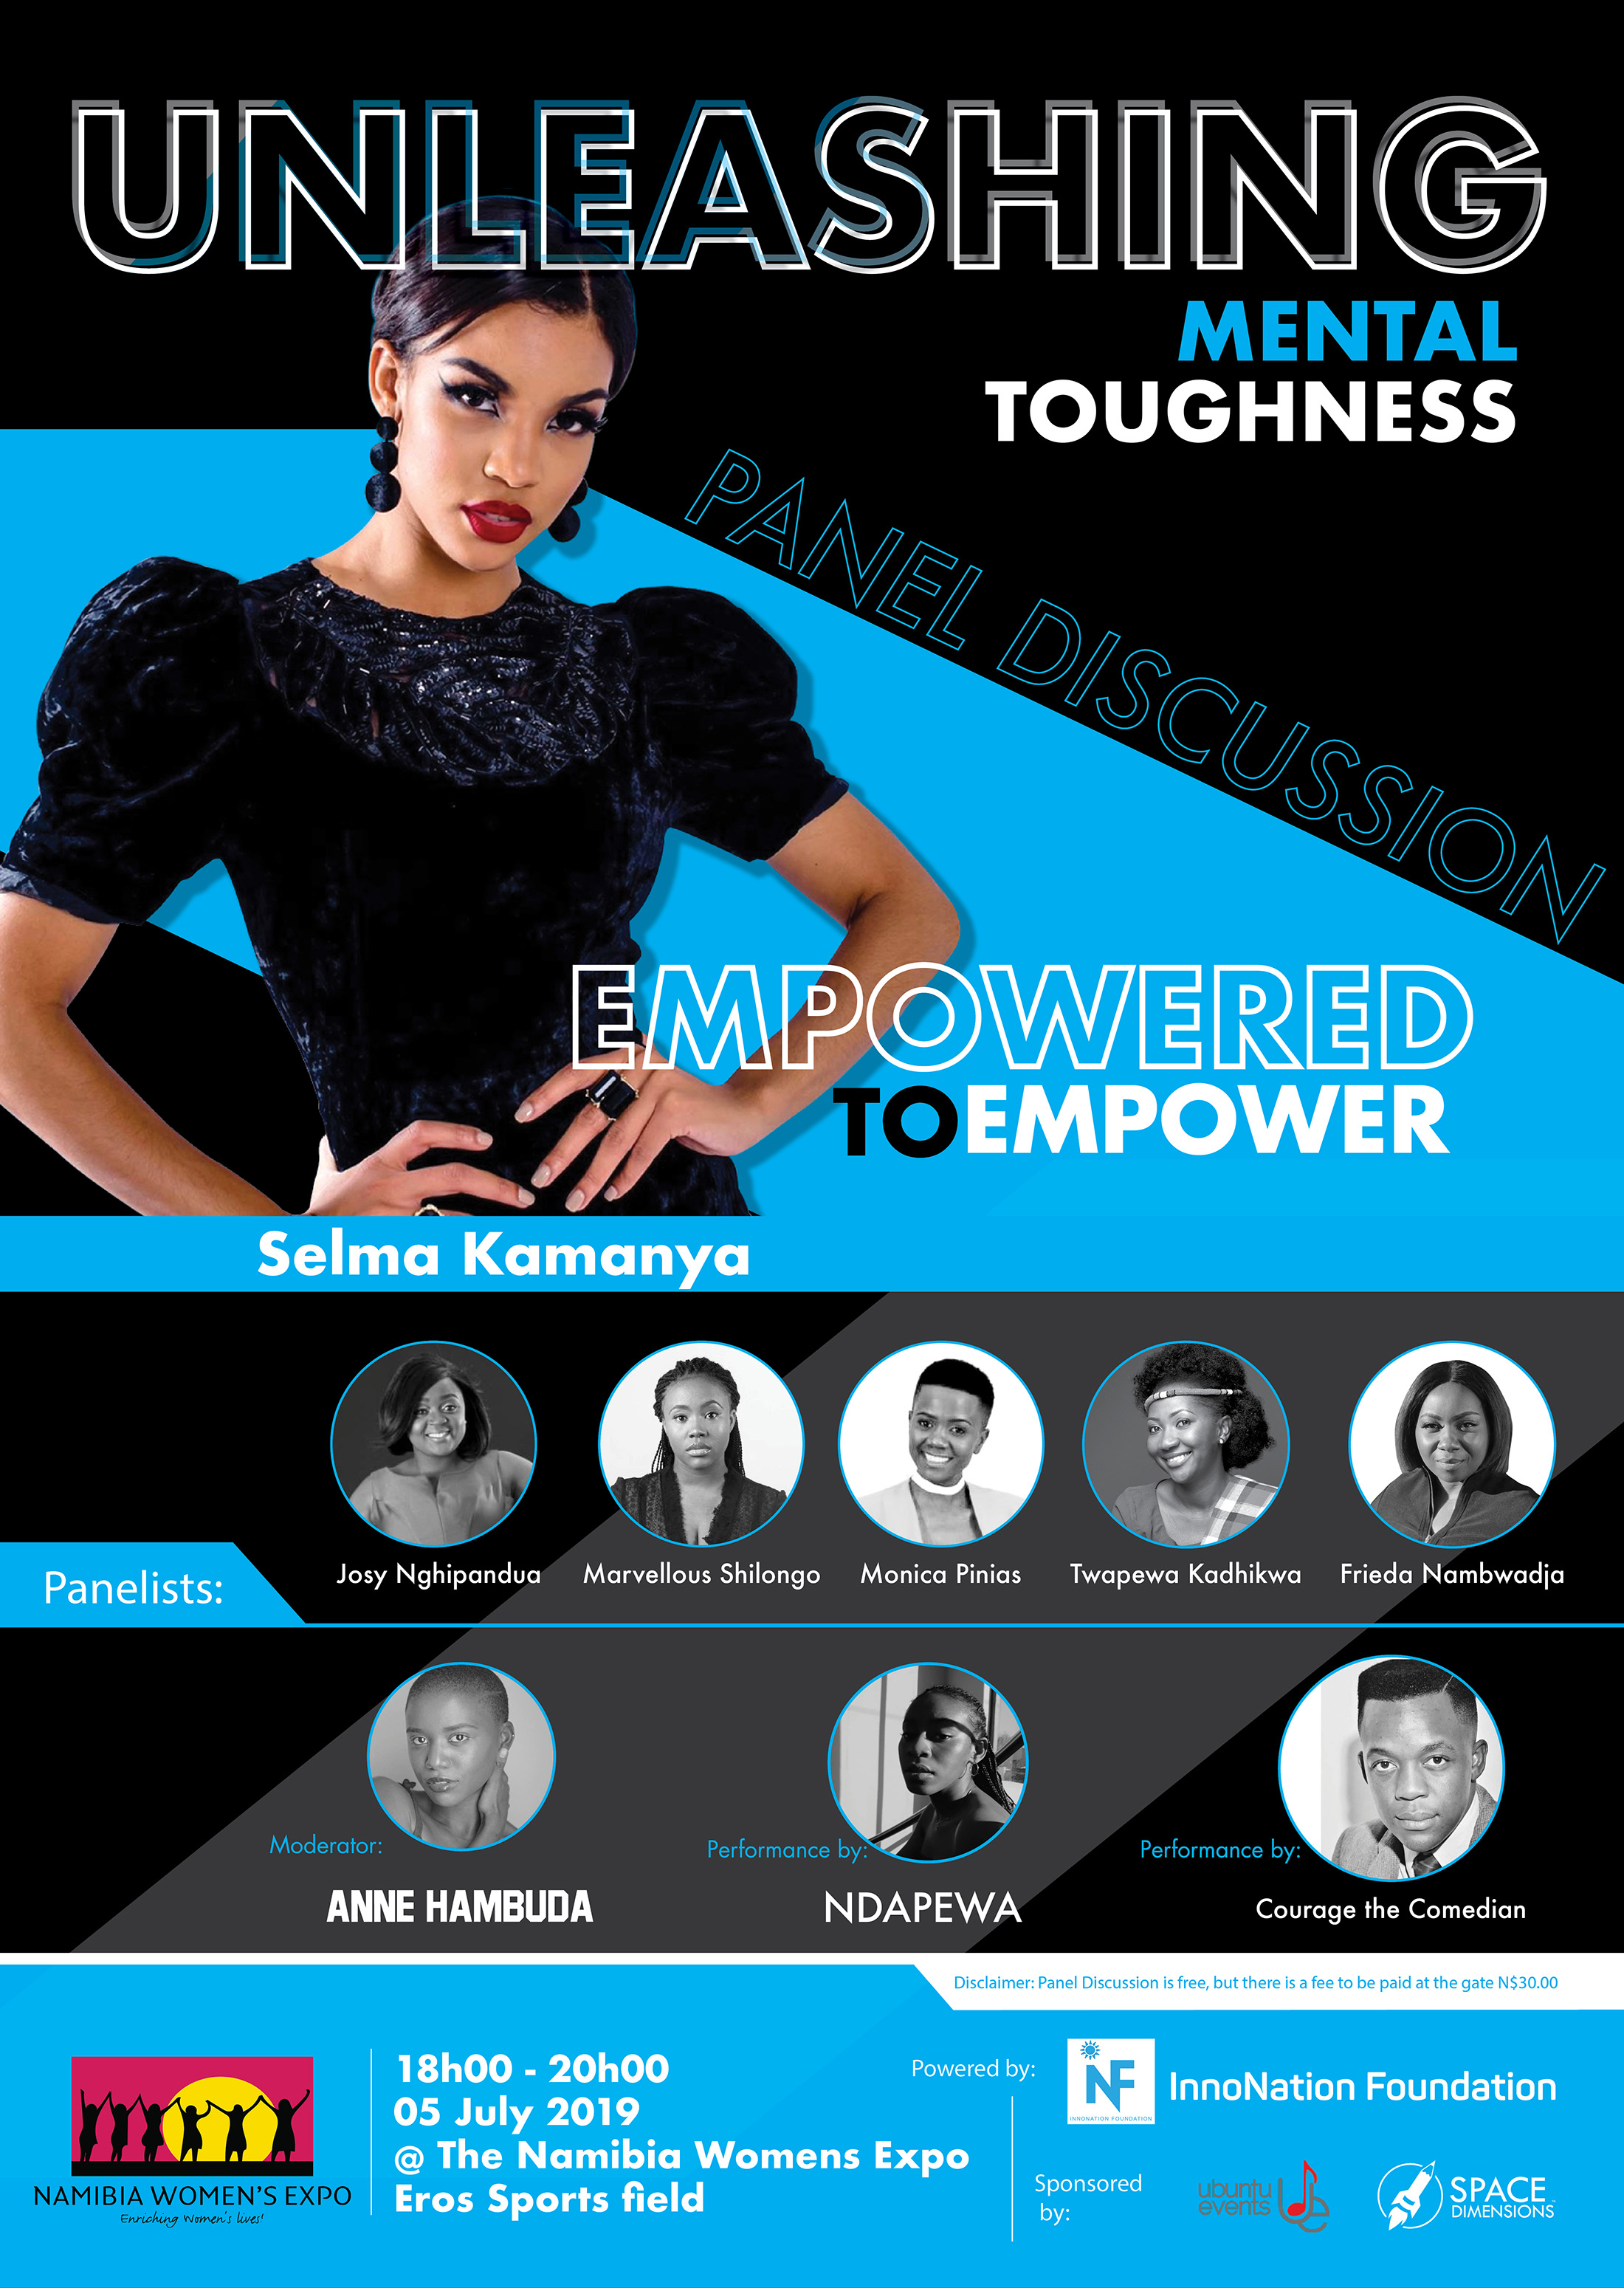 Unleasing Mental Toughness - Namibia Empowered to Empower - Panel Discussion